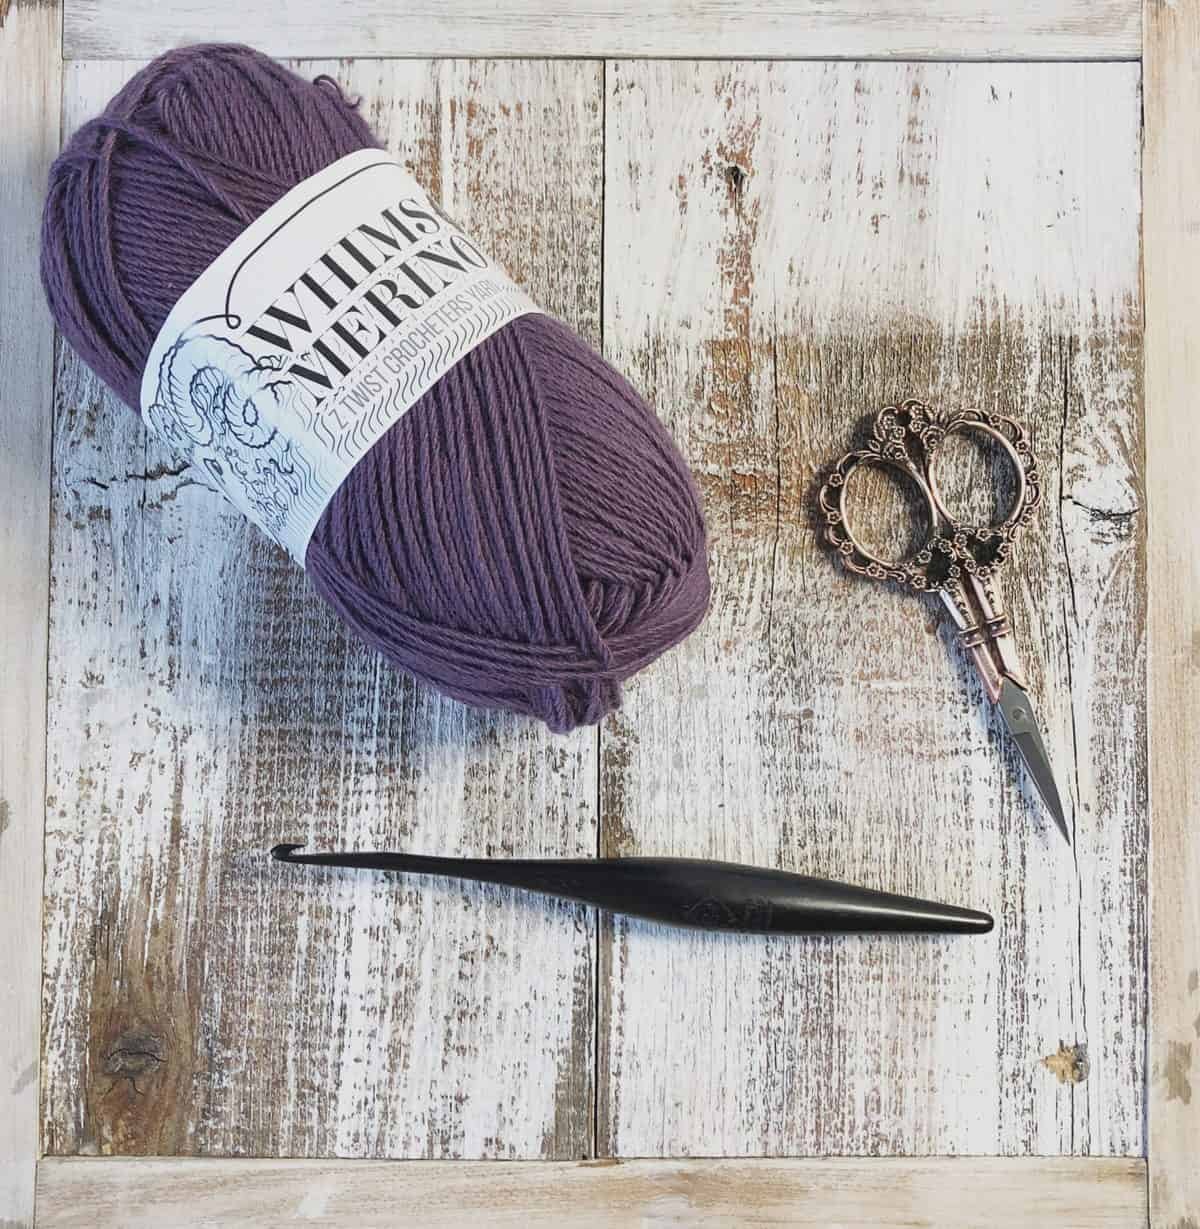 picture of one ball Whims Merino yarn in purple with wood crochet hook and scissors